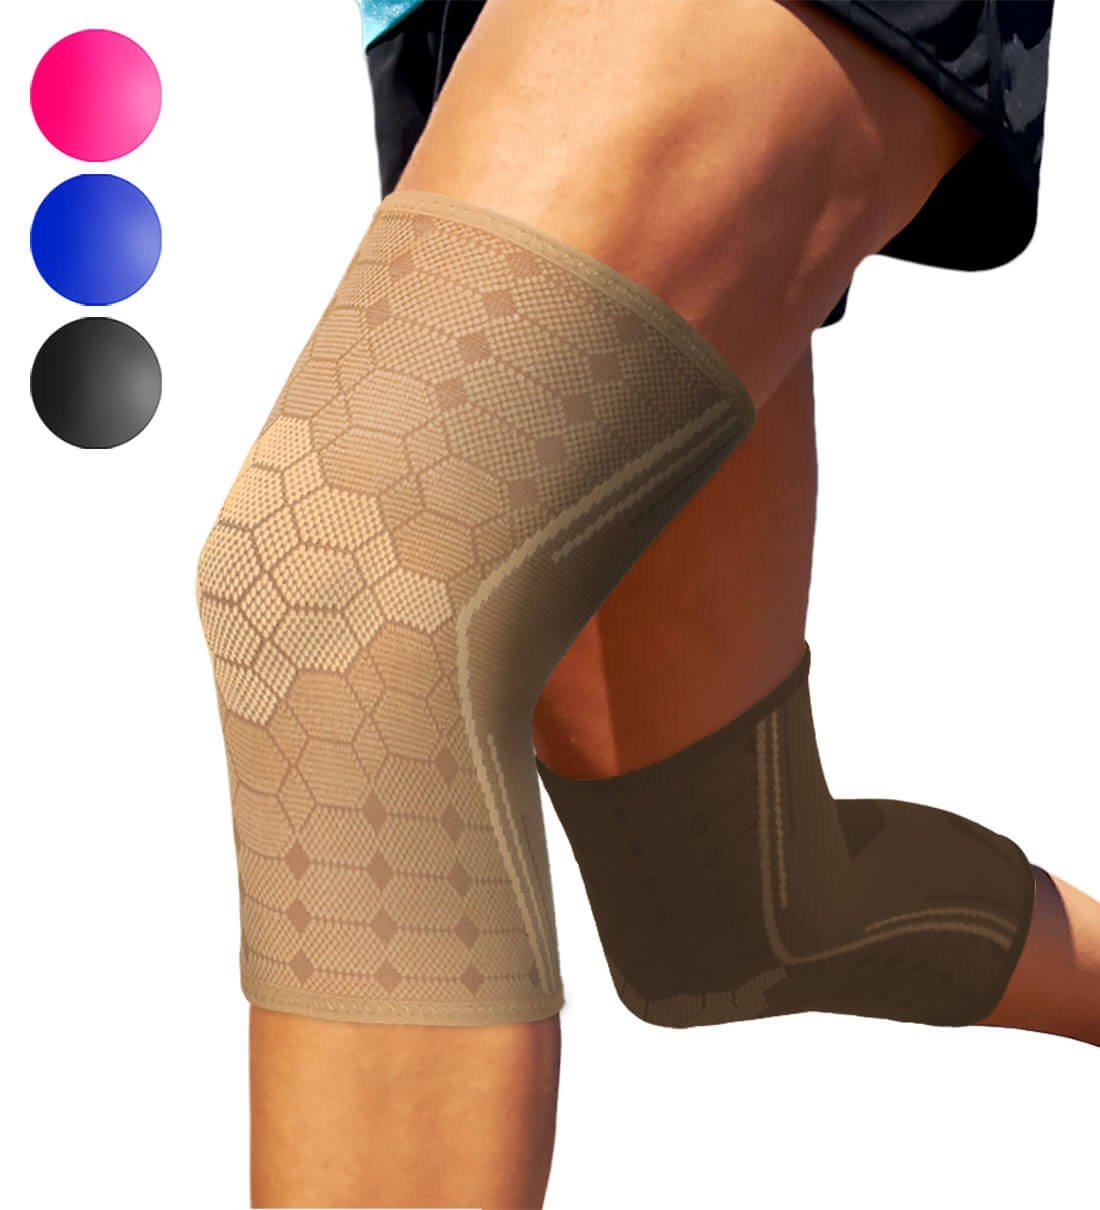 Sparthos_Knee_Compression_Sleeves